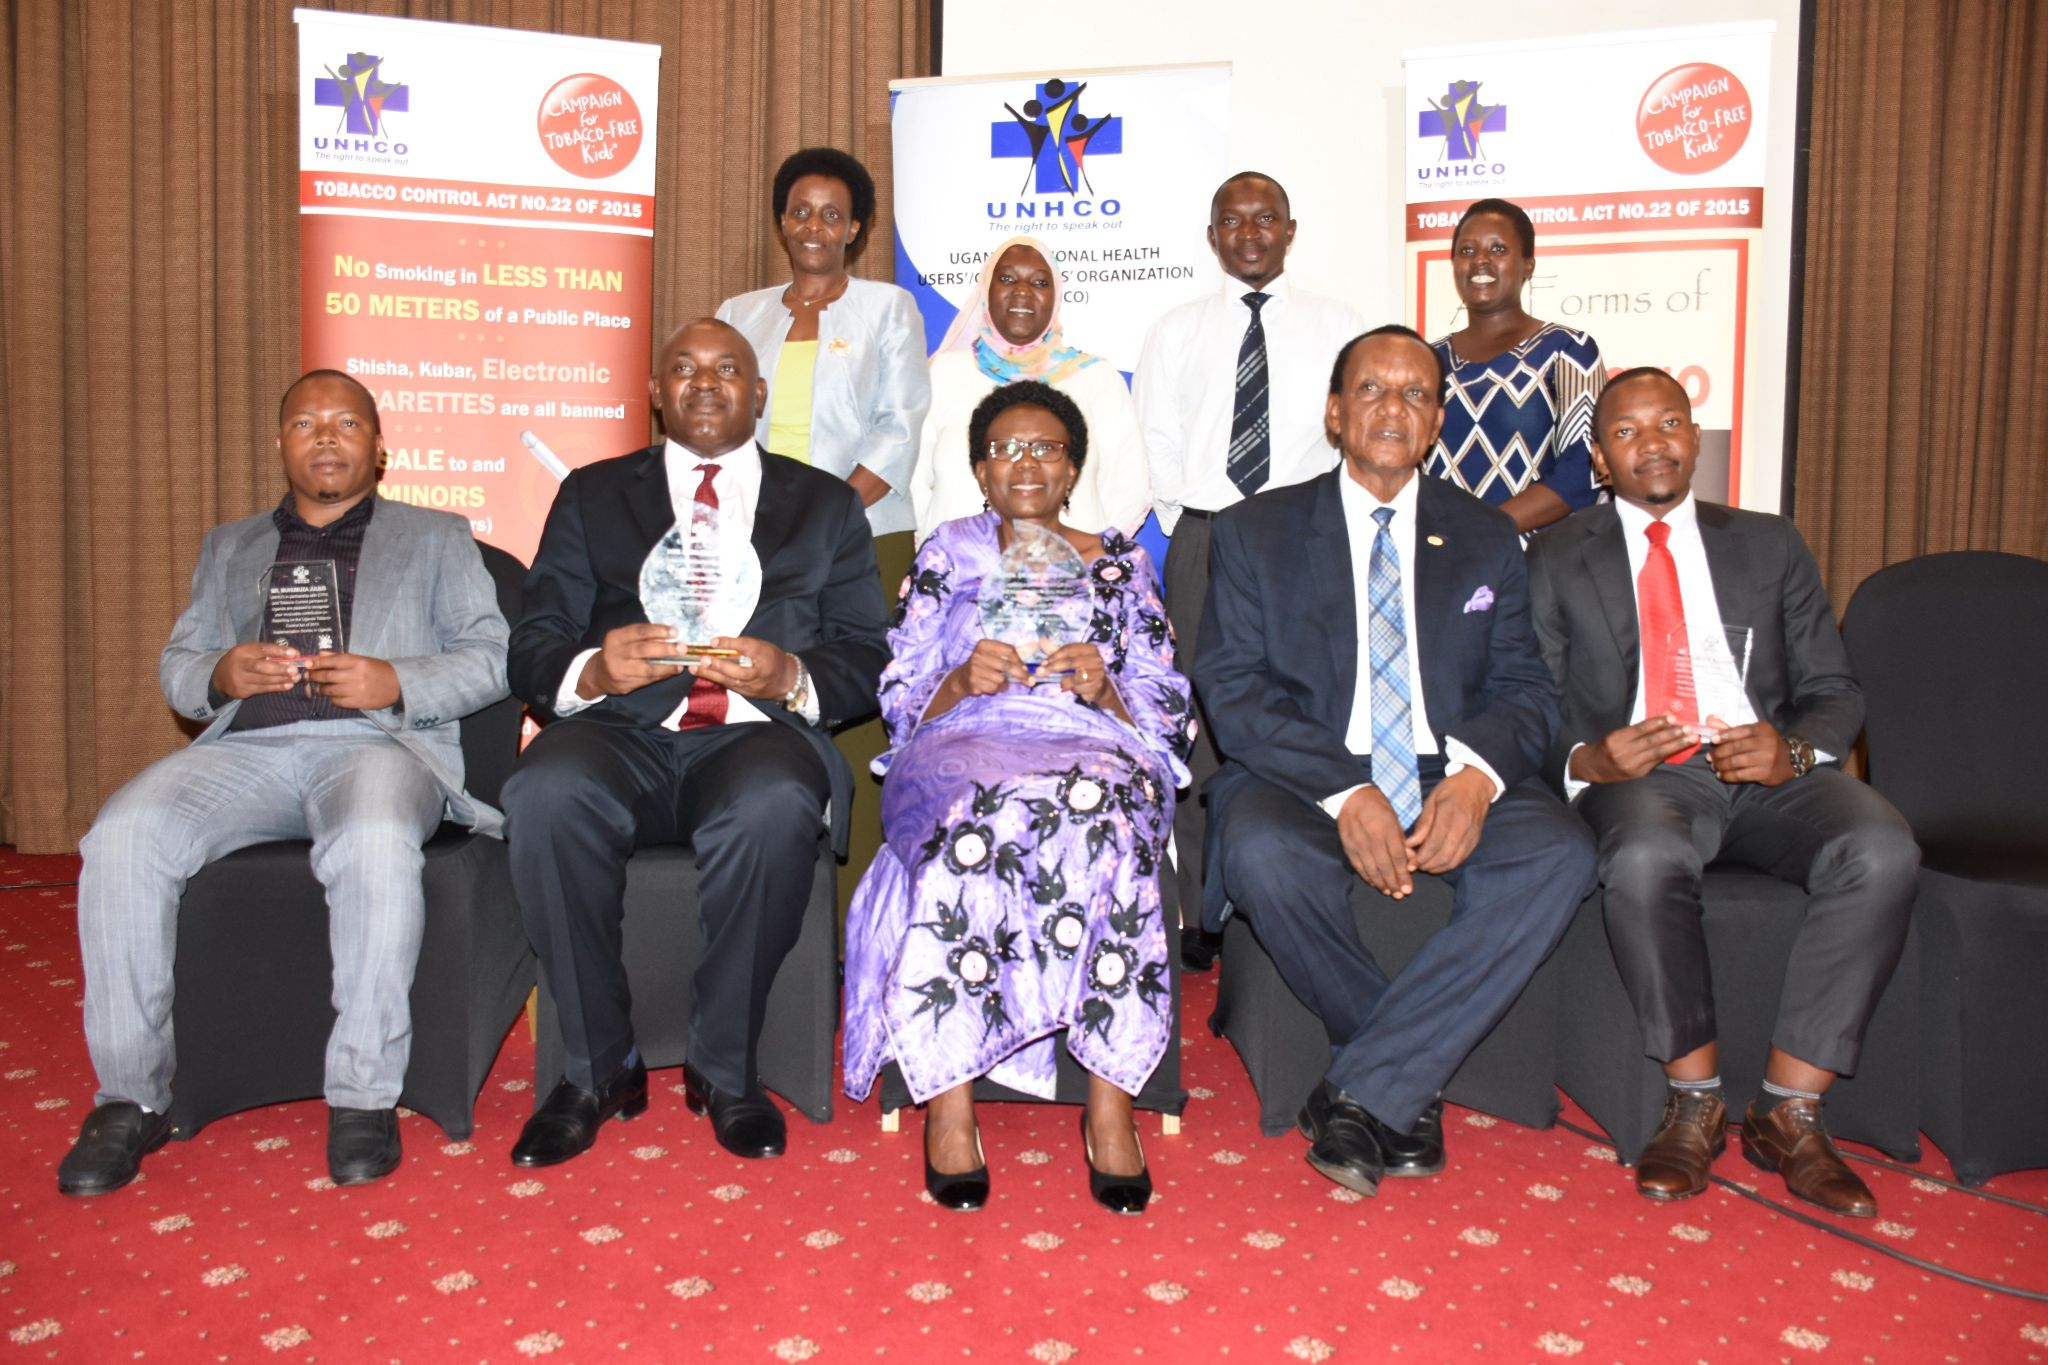 Ministers Dr Ruth Aceng (front centre), Dr Chris Baryomunsi (2nd L) and other award recipients.